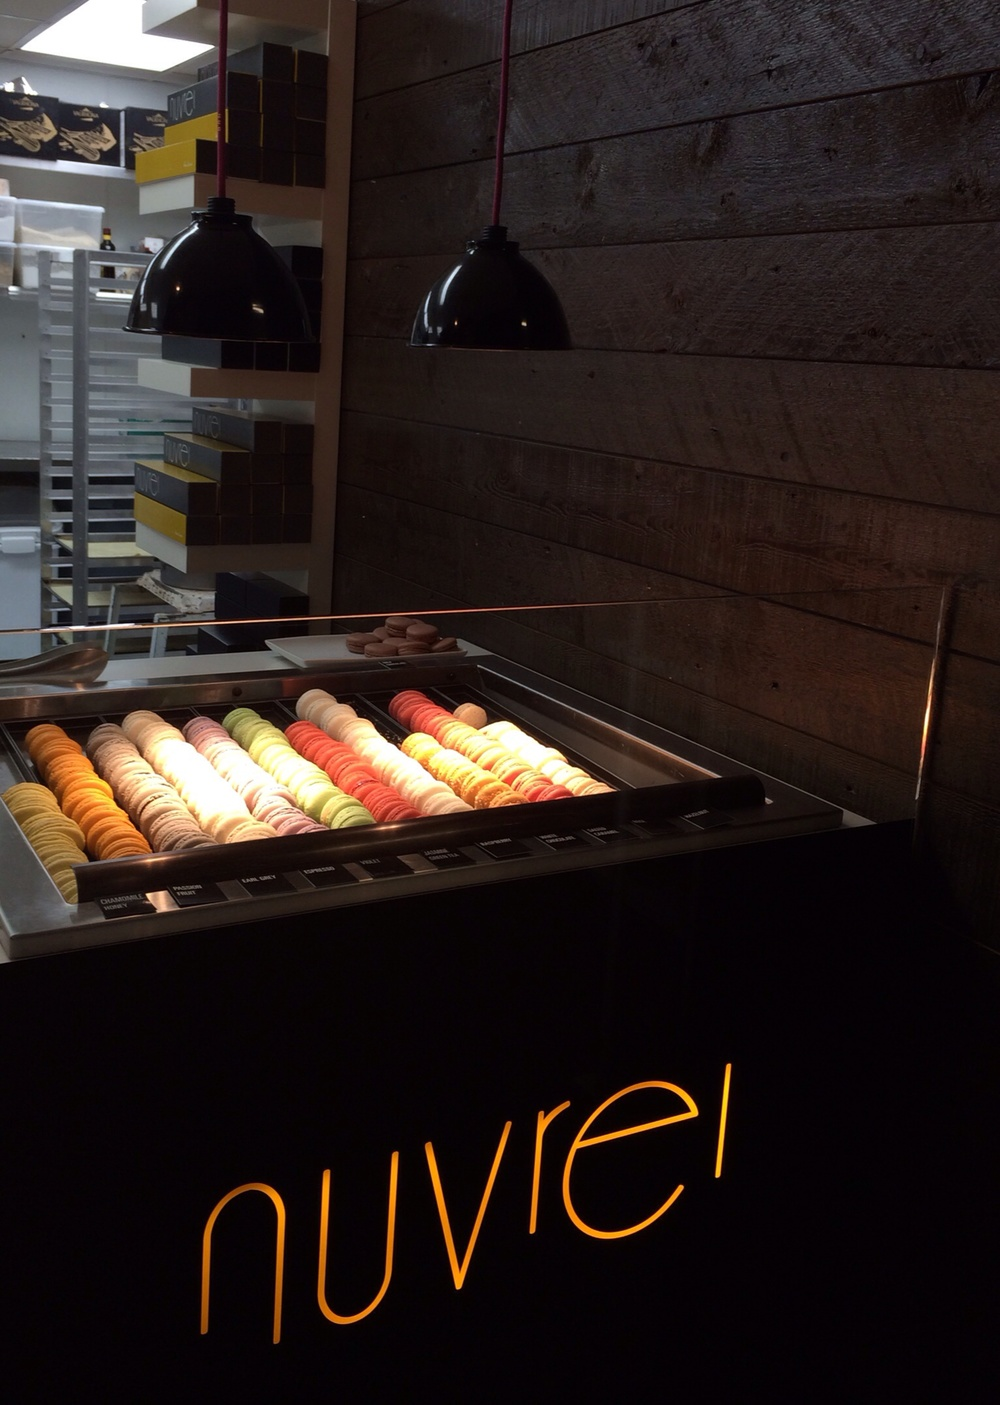 The Macaron stand is hidden downstairs from the cafe